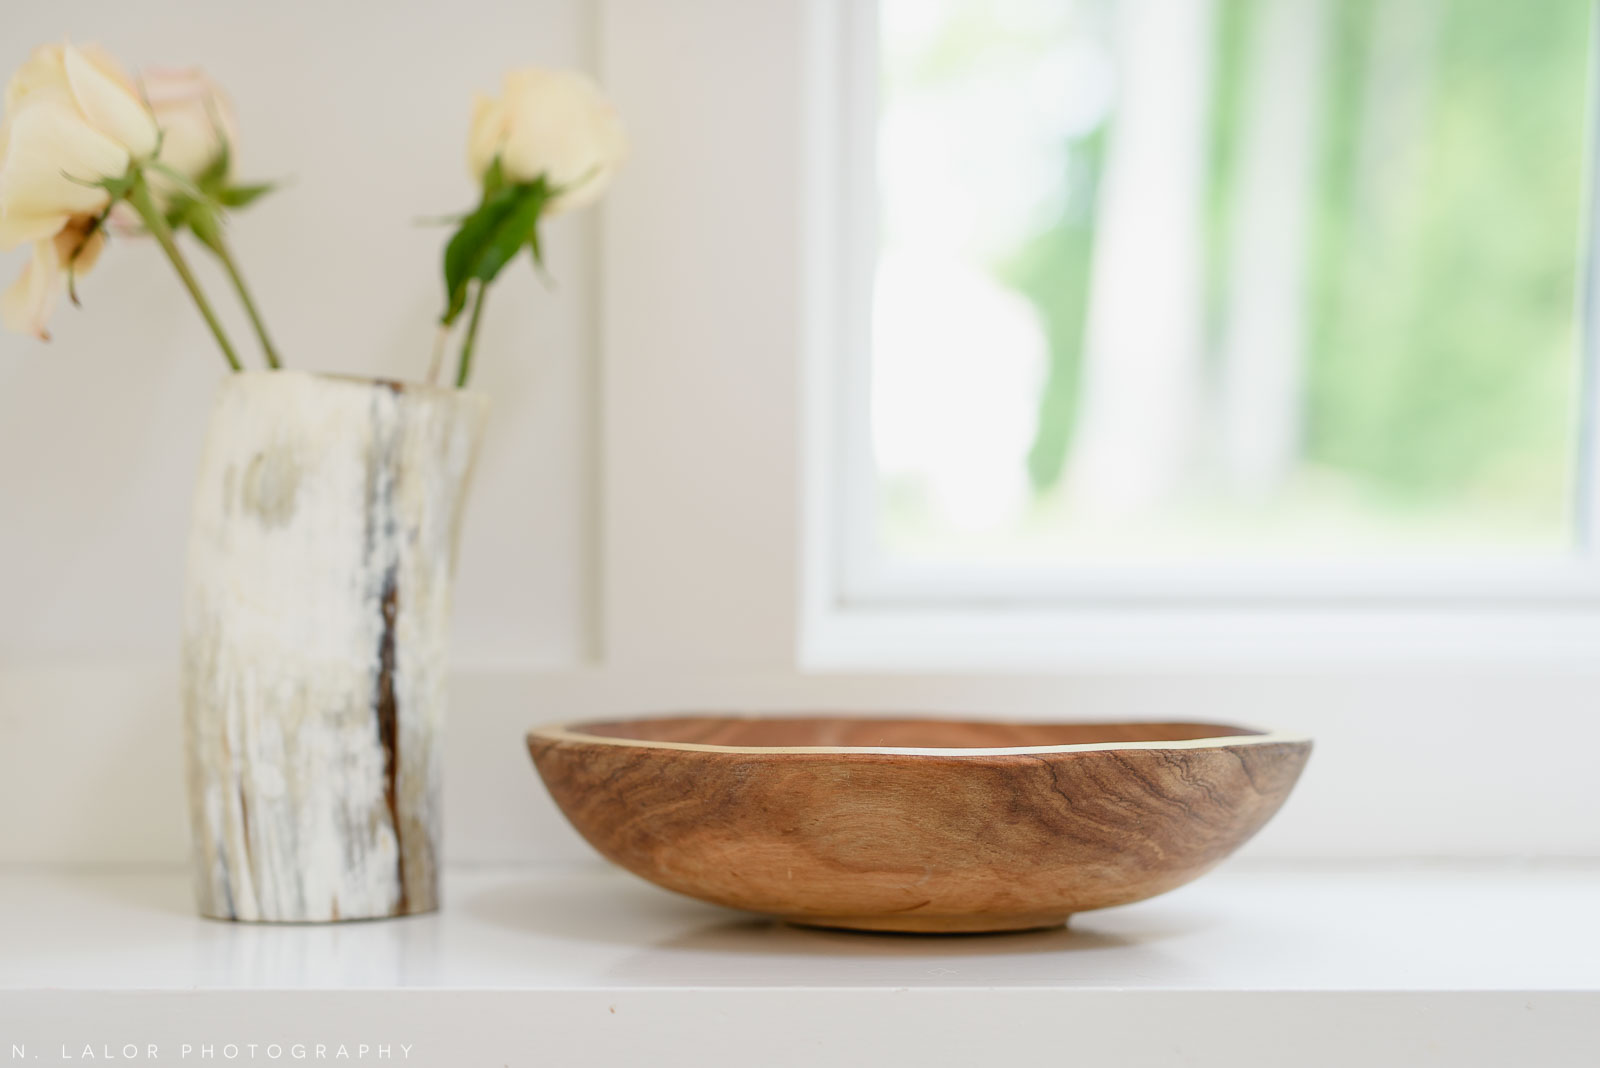 Wooden bowl and vase. Local Small Business photoshoot for METTA10 by N. Lalor Photography. Westport, Connecticut.